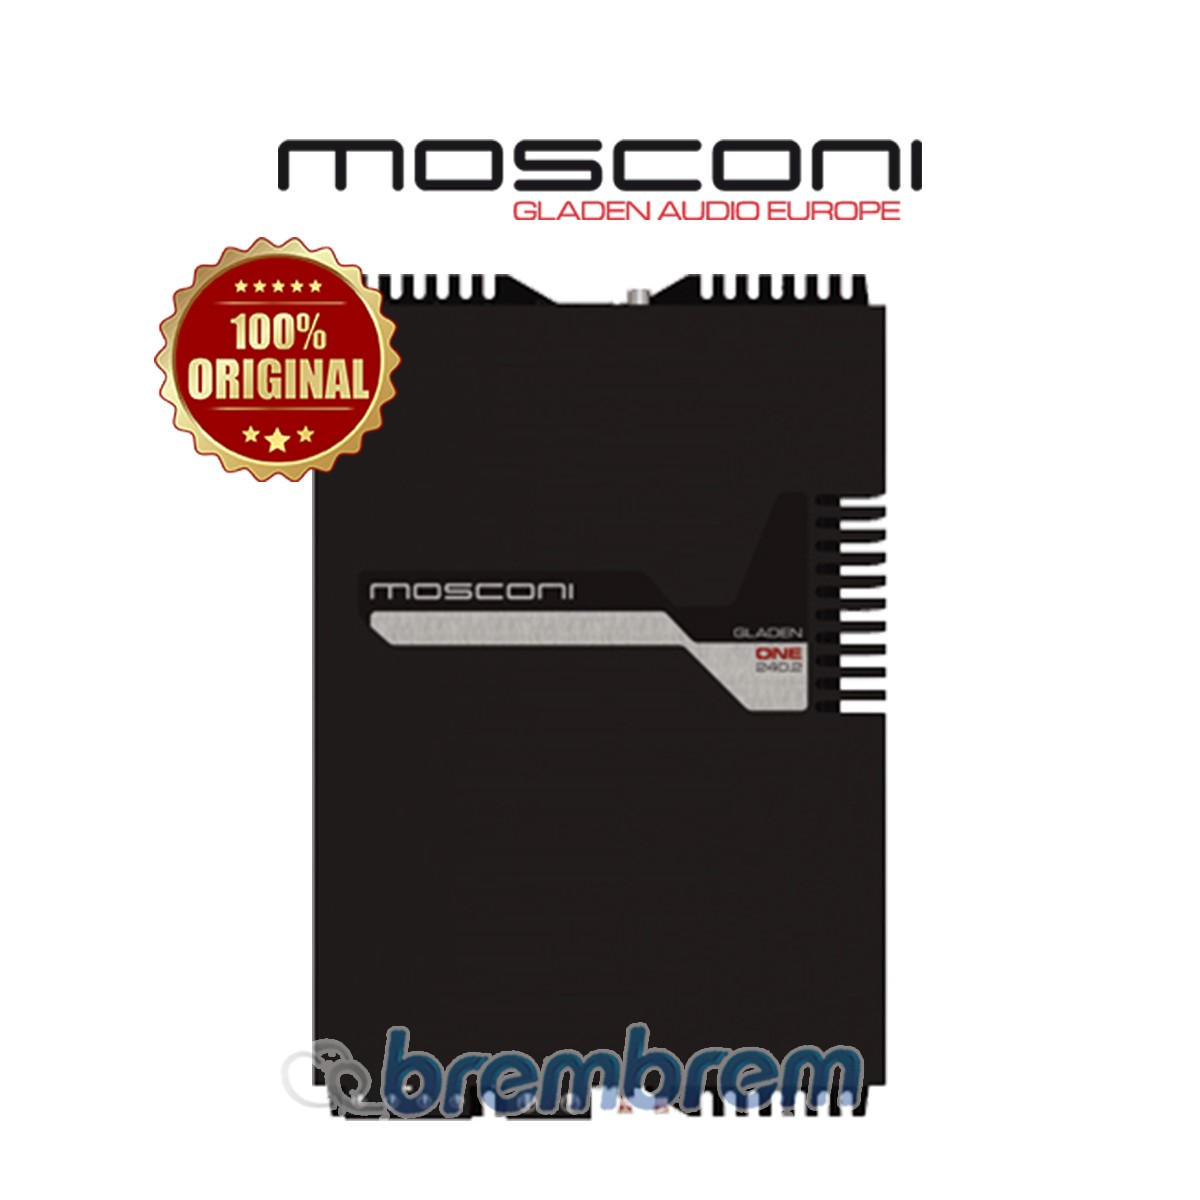 MOSCONI ONE 240.2 - POWER 2 CHANNEL